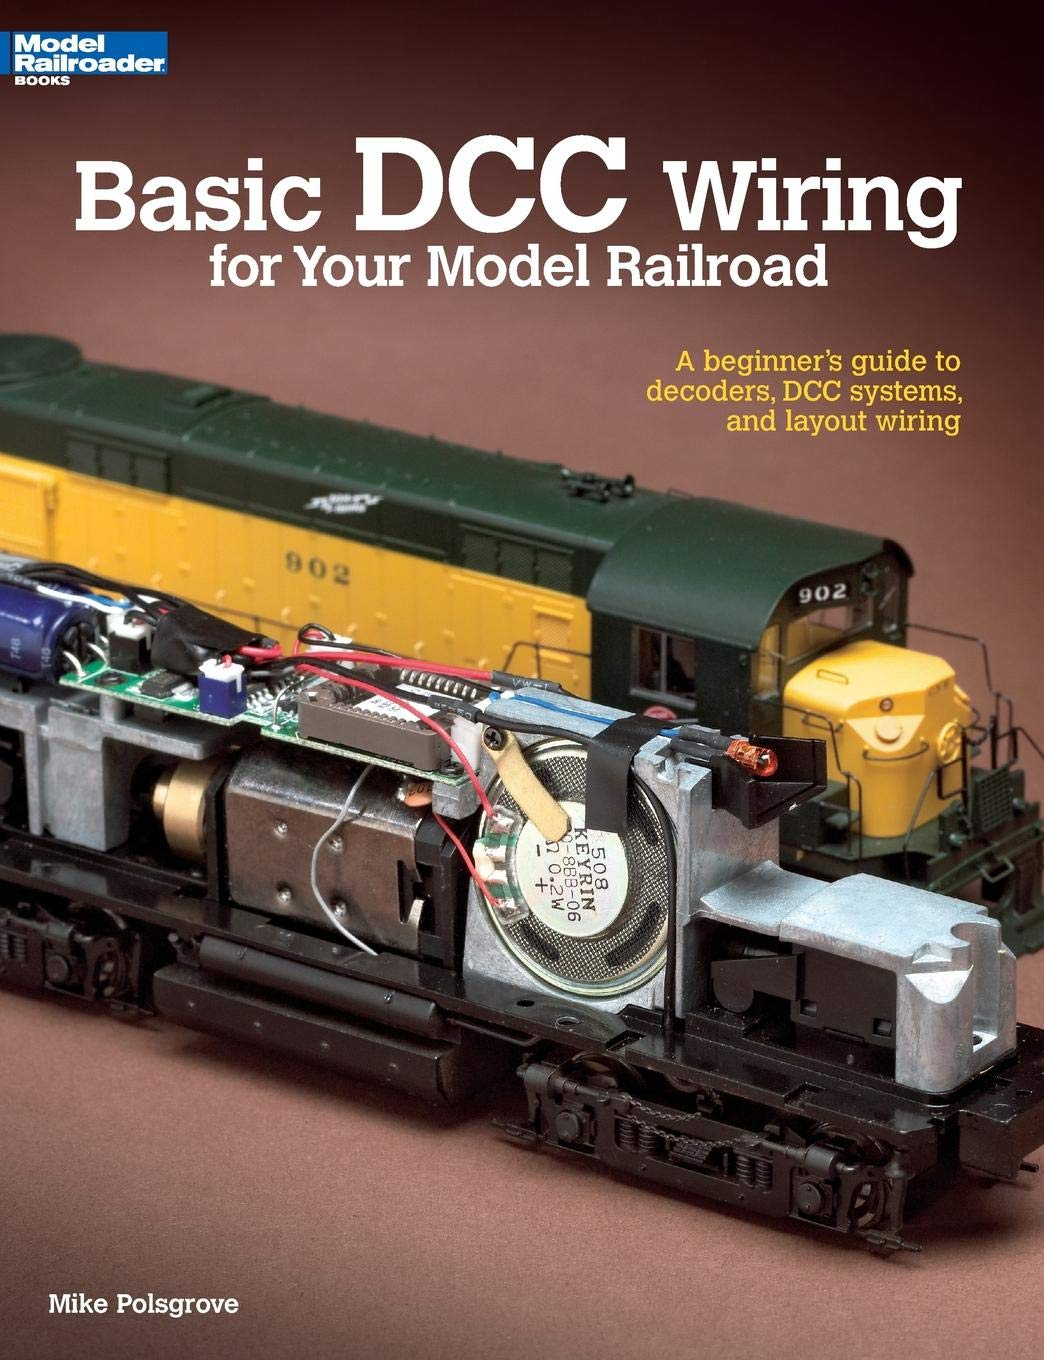 basic dcc wiring for your model railroad a beginner s guide to rh amazon com dcc decoder wiring guide dcc wiring guide pdf